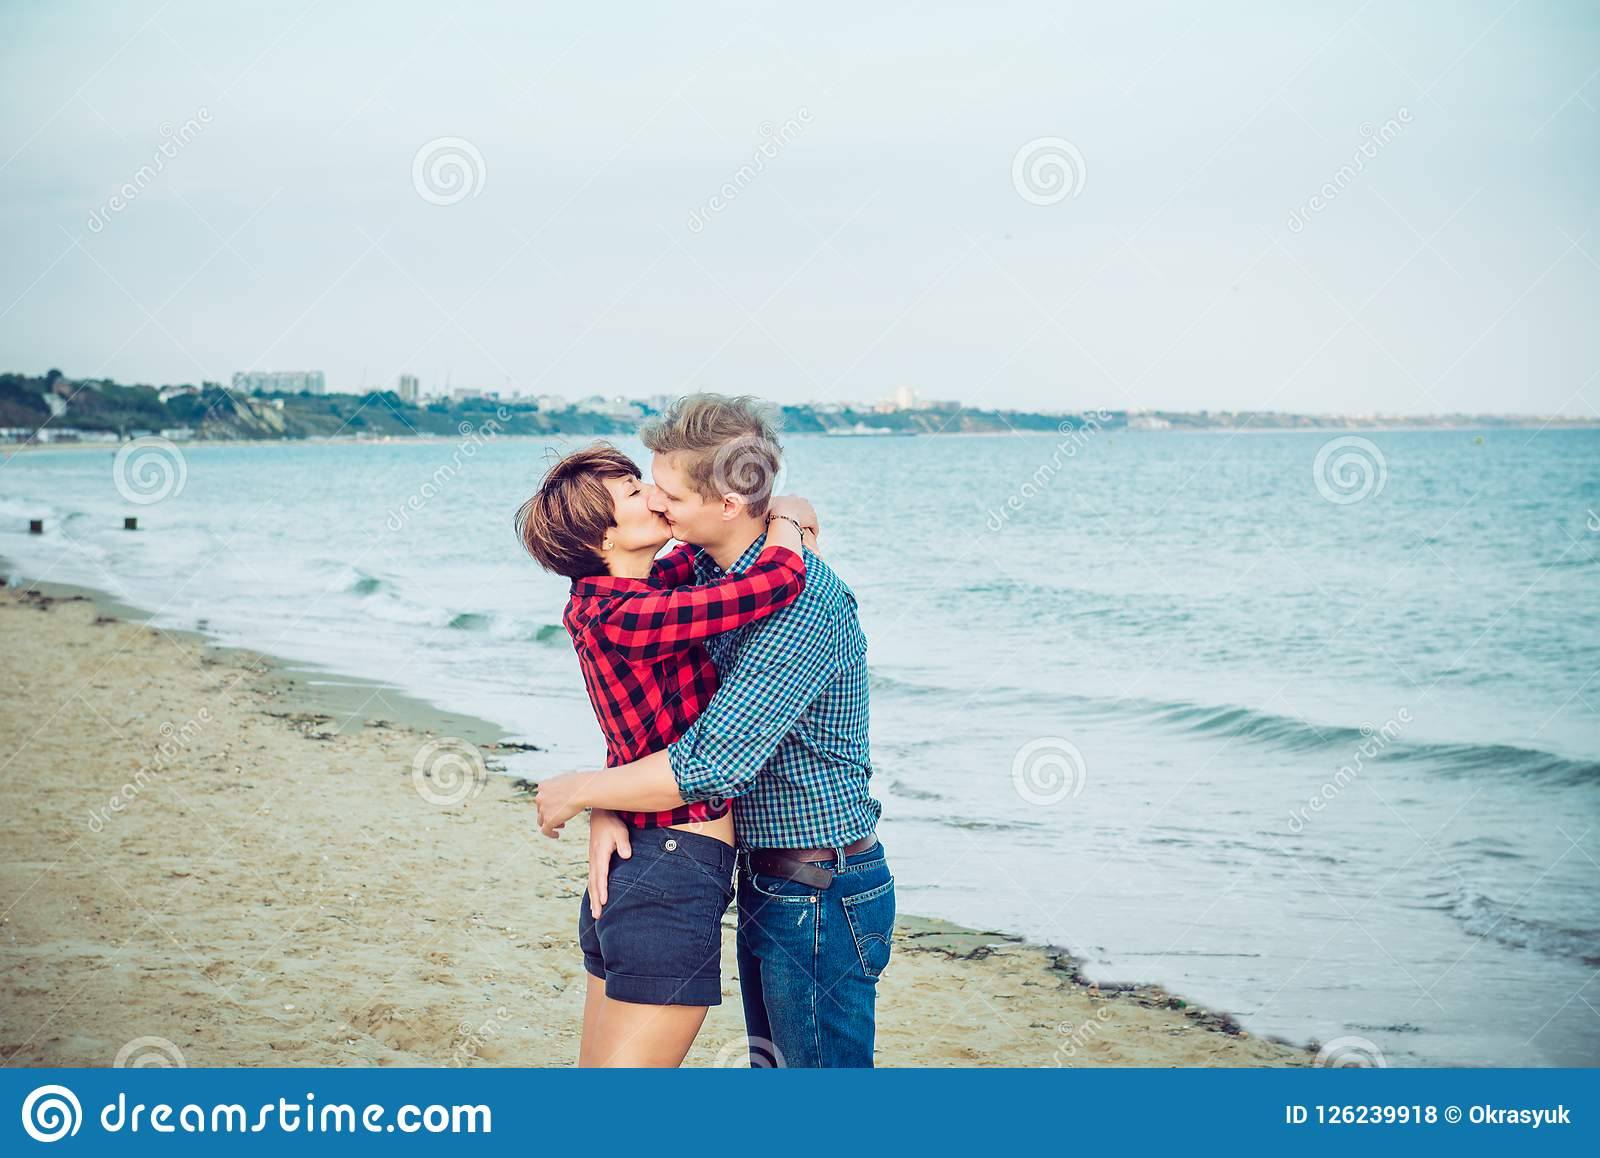 Love Story On The Sea Honeymoon Kiss Couple In Love Having Happy Romantic Tender Moments On The Beach Boyfriend And Girlfriend Stock Photo Image Of Happiness Girl 126239918